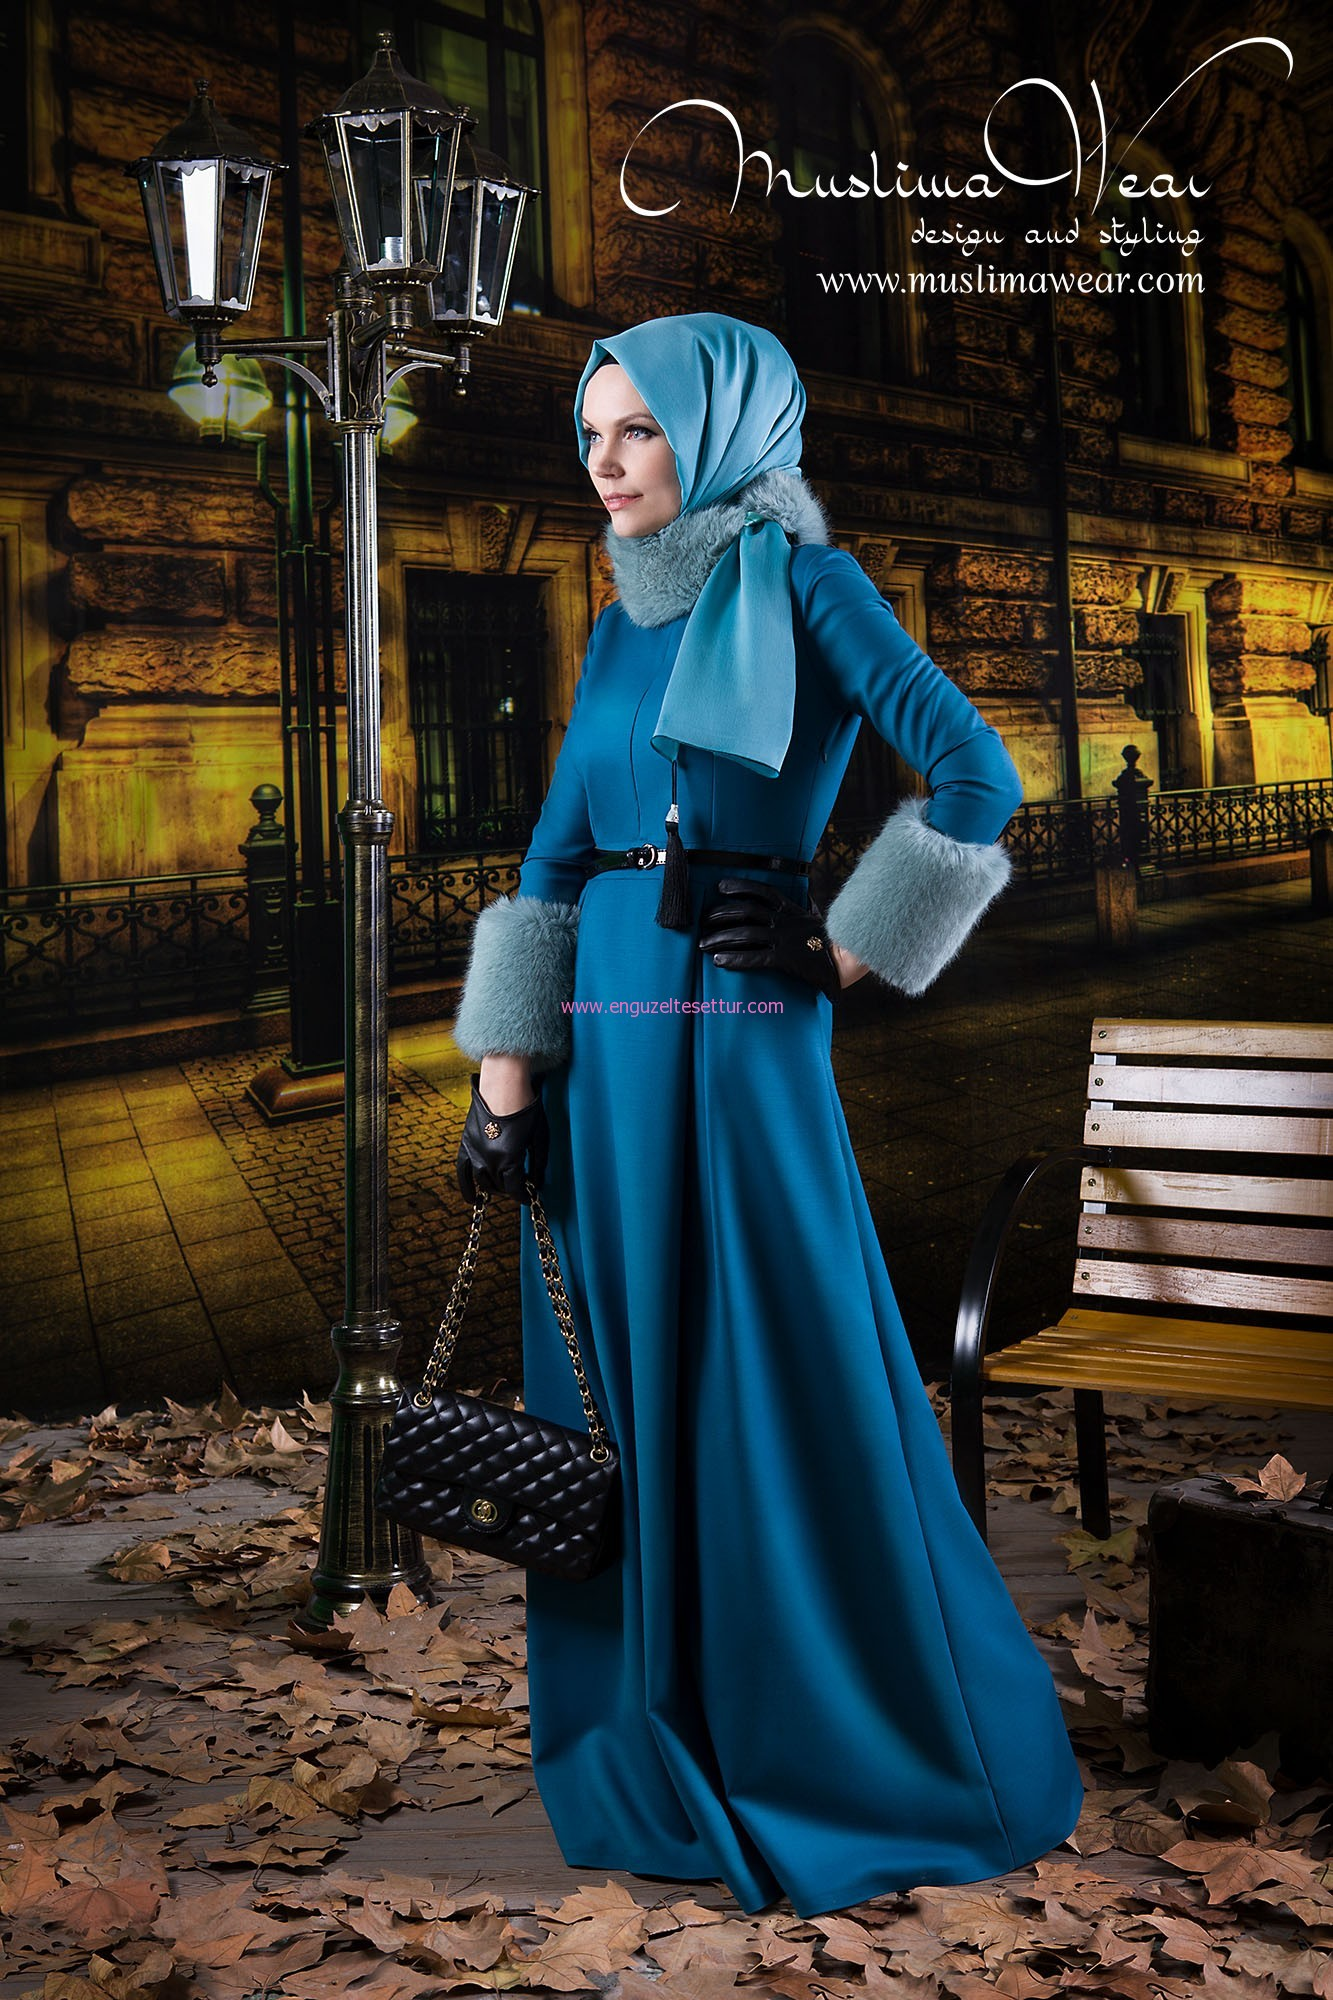 New French Dress in ocean blue color Code 14010 Fall Winter 2013-14